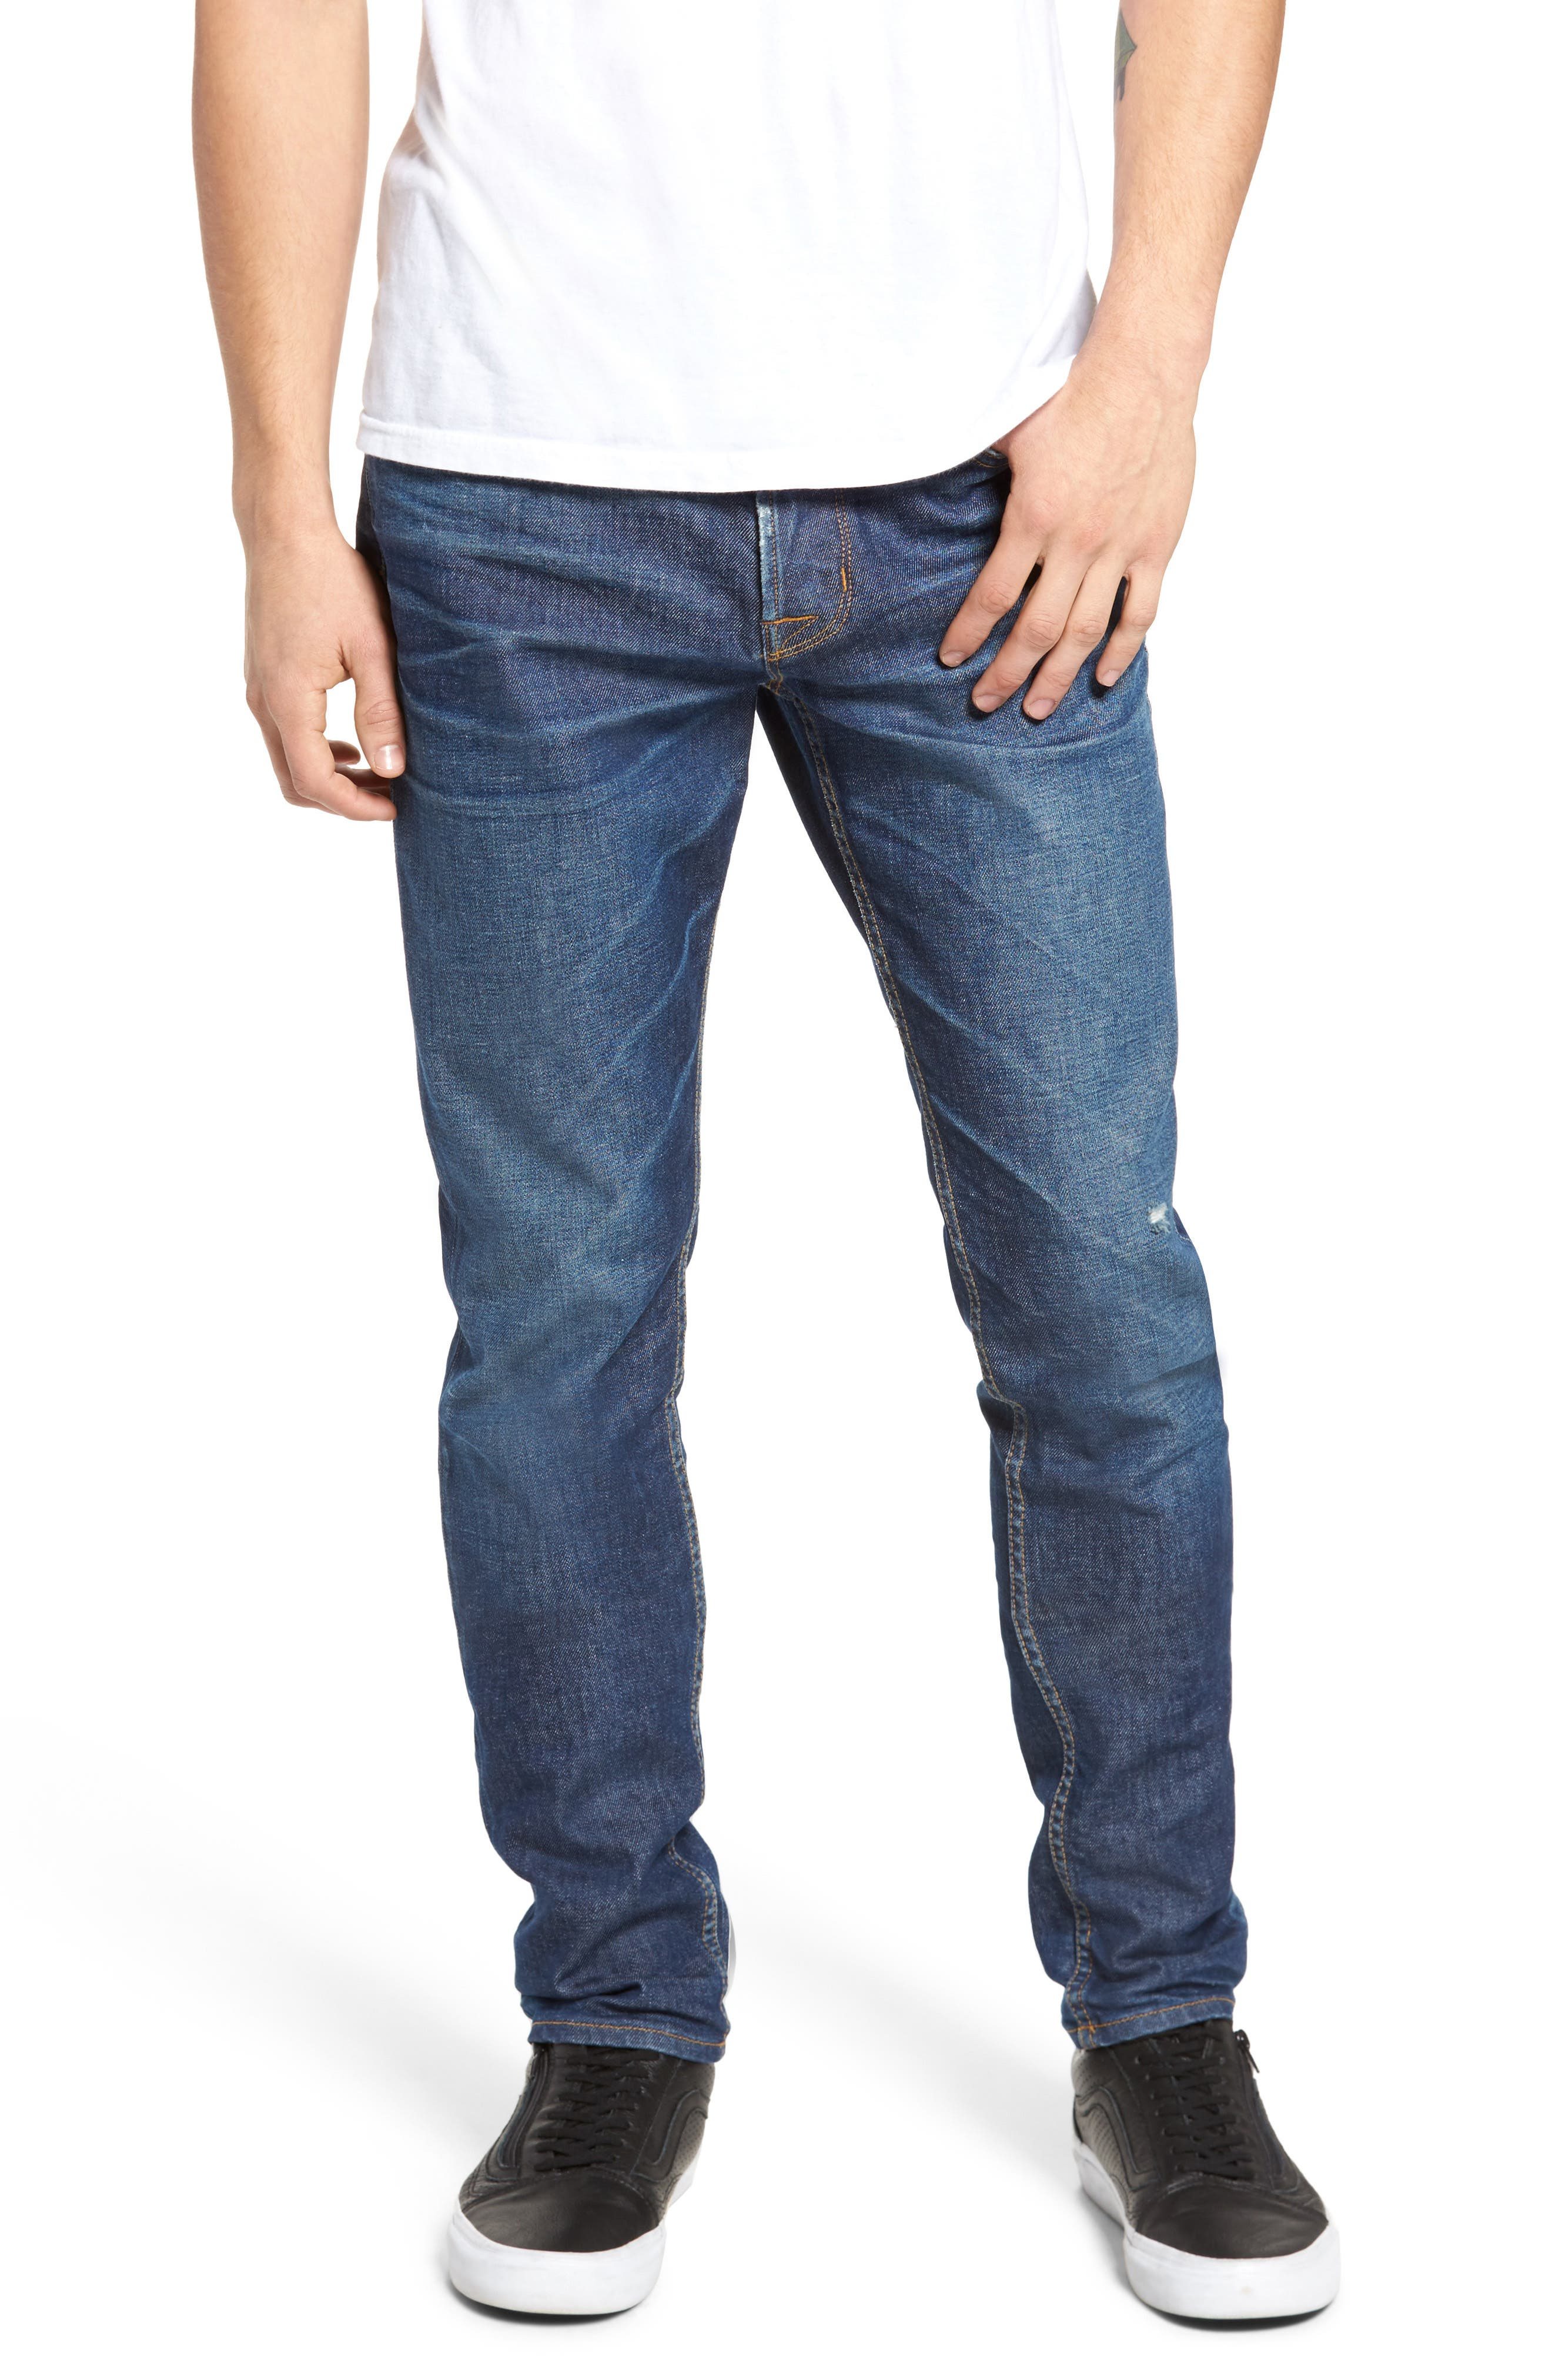 Main Image - Hudson Jeans Axl Skinny Fit Jeans (Falling Down)